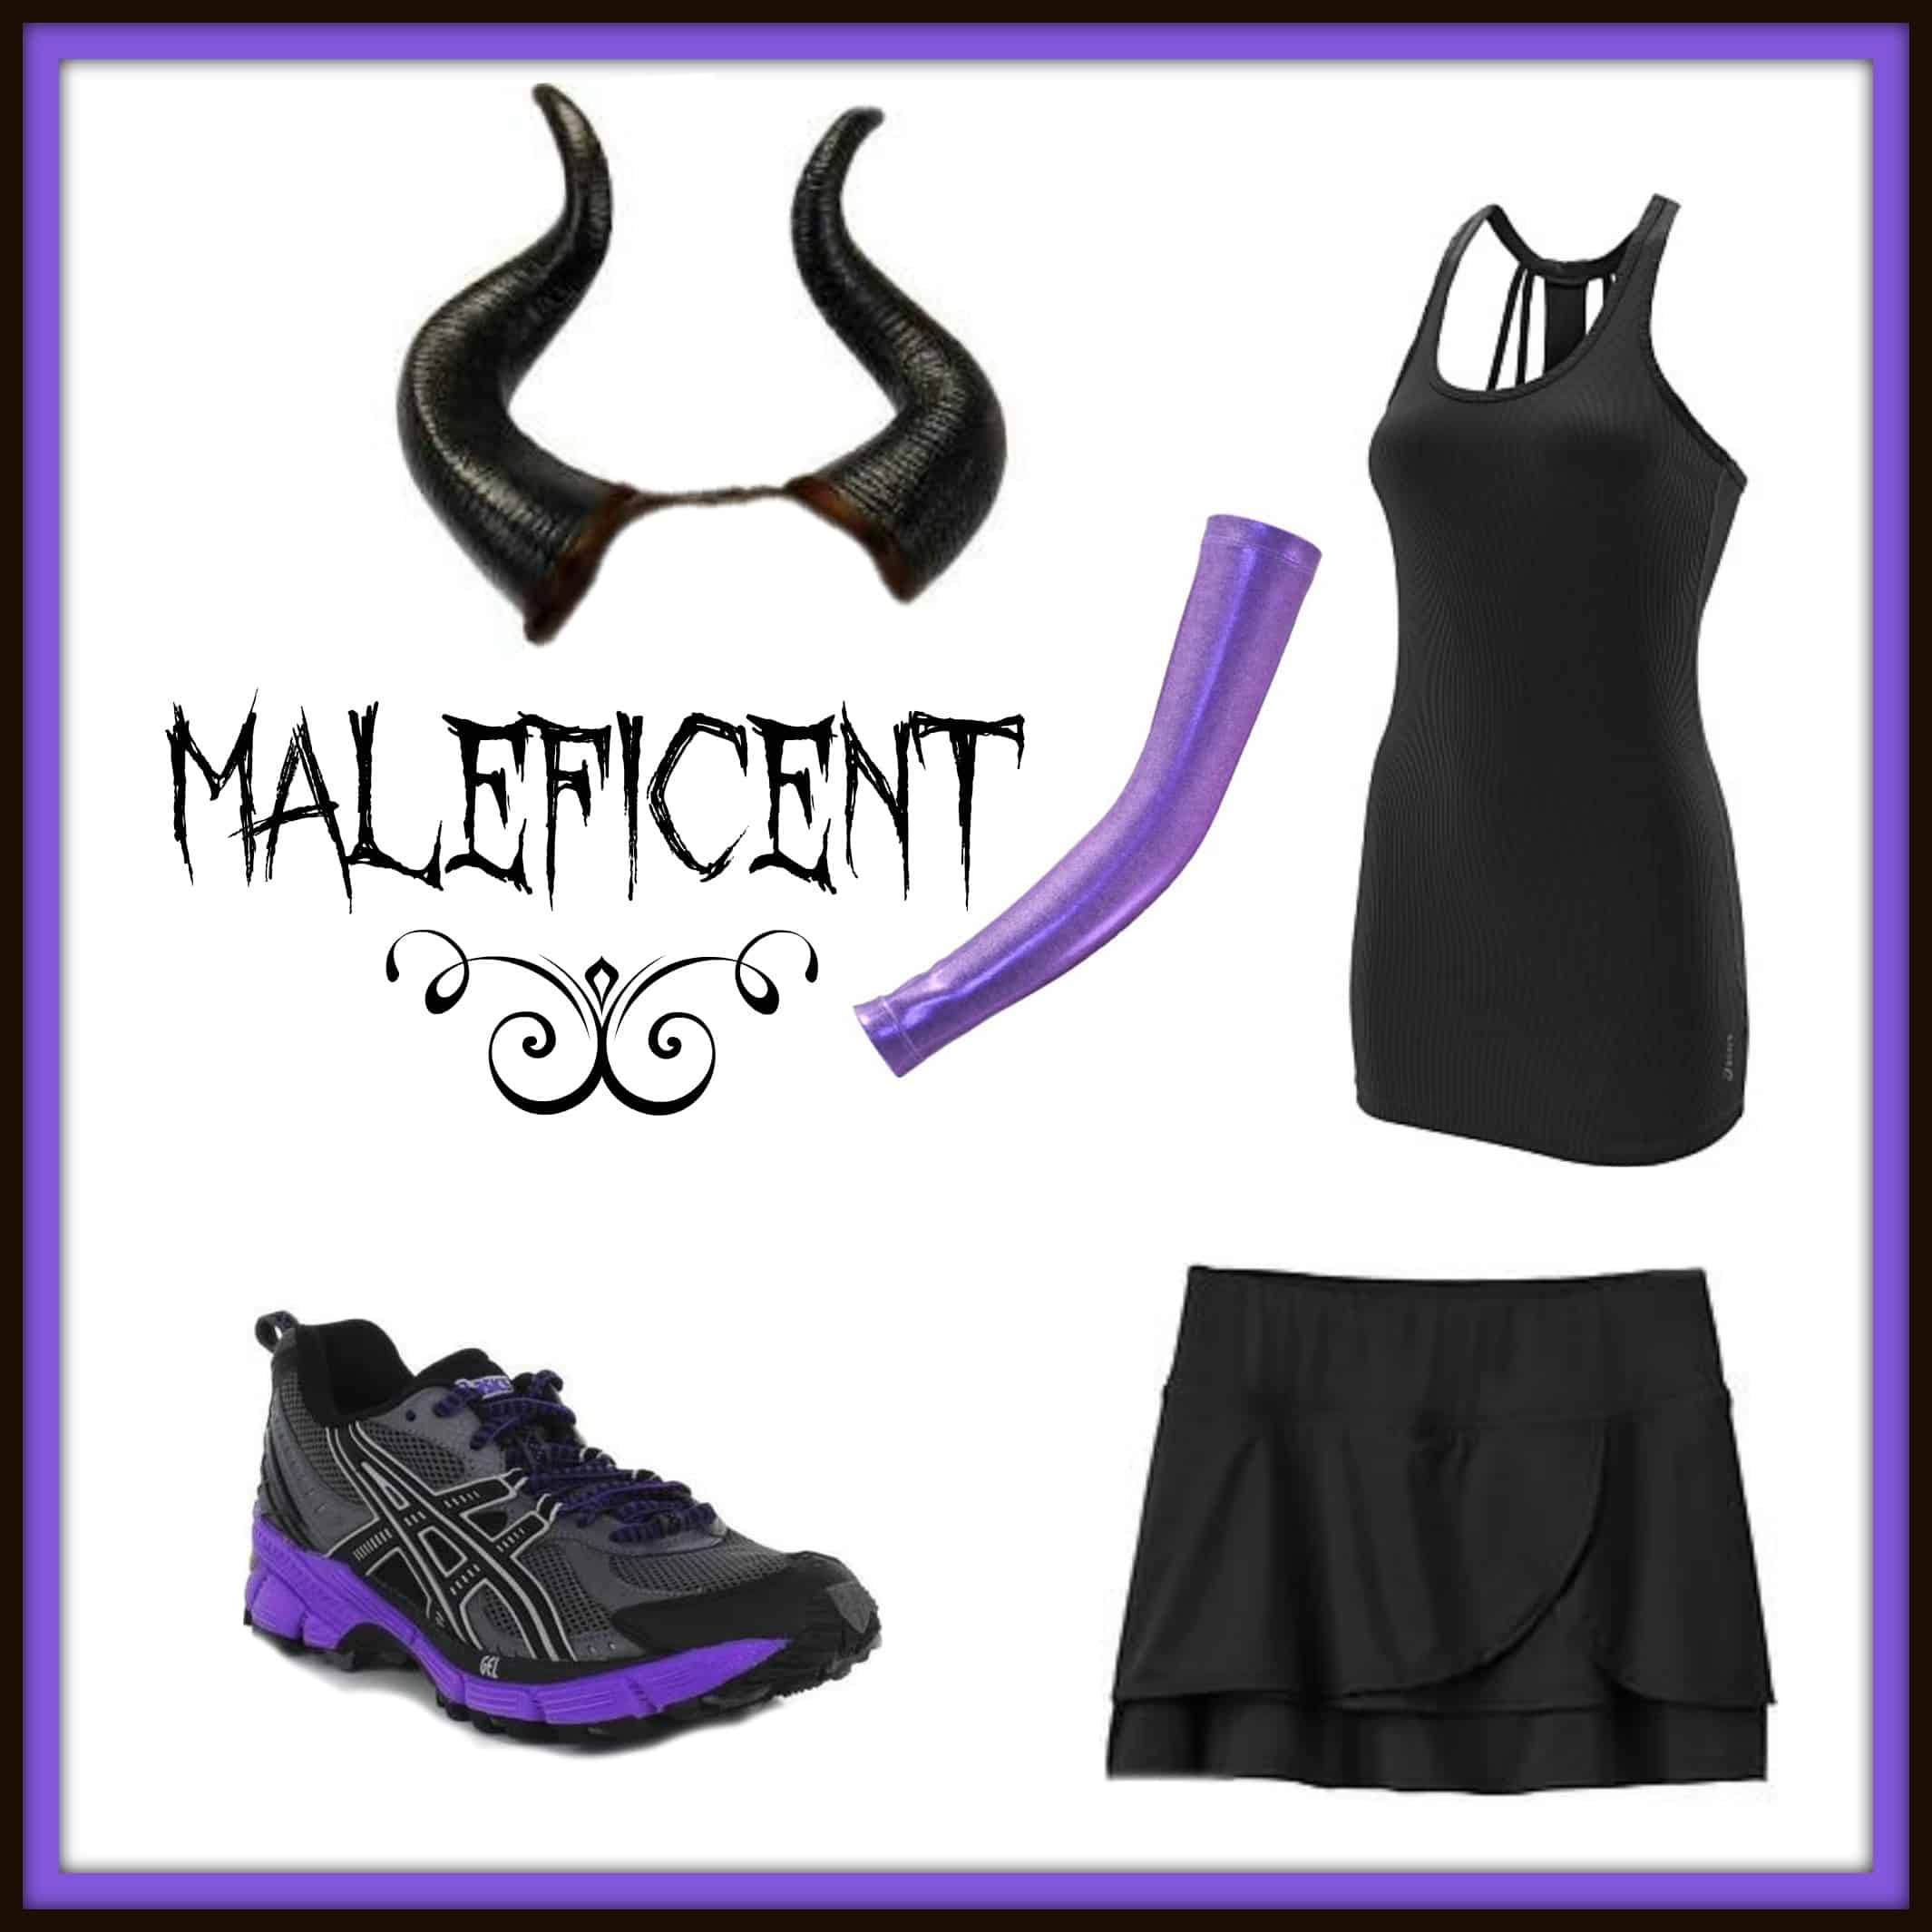 Maleficent running costume